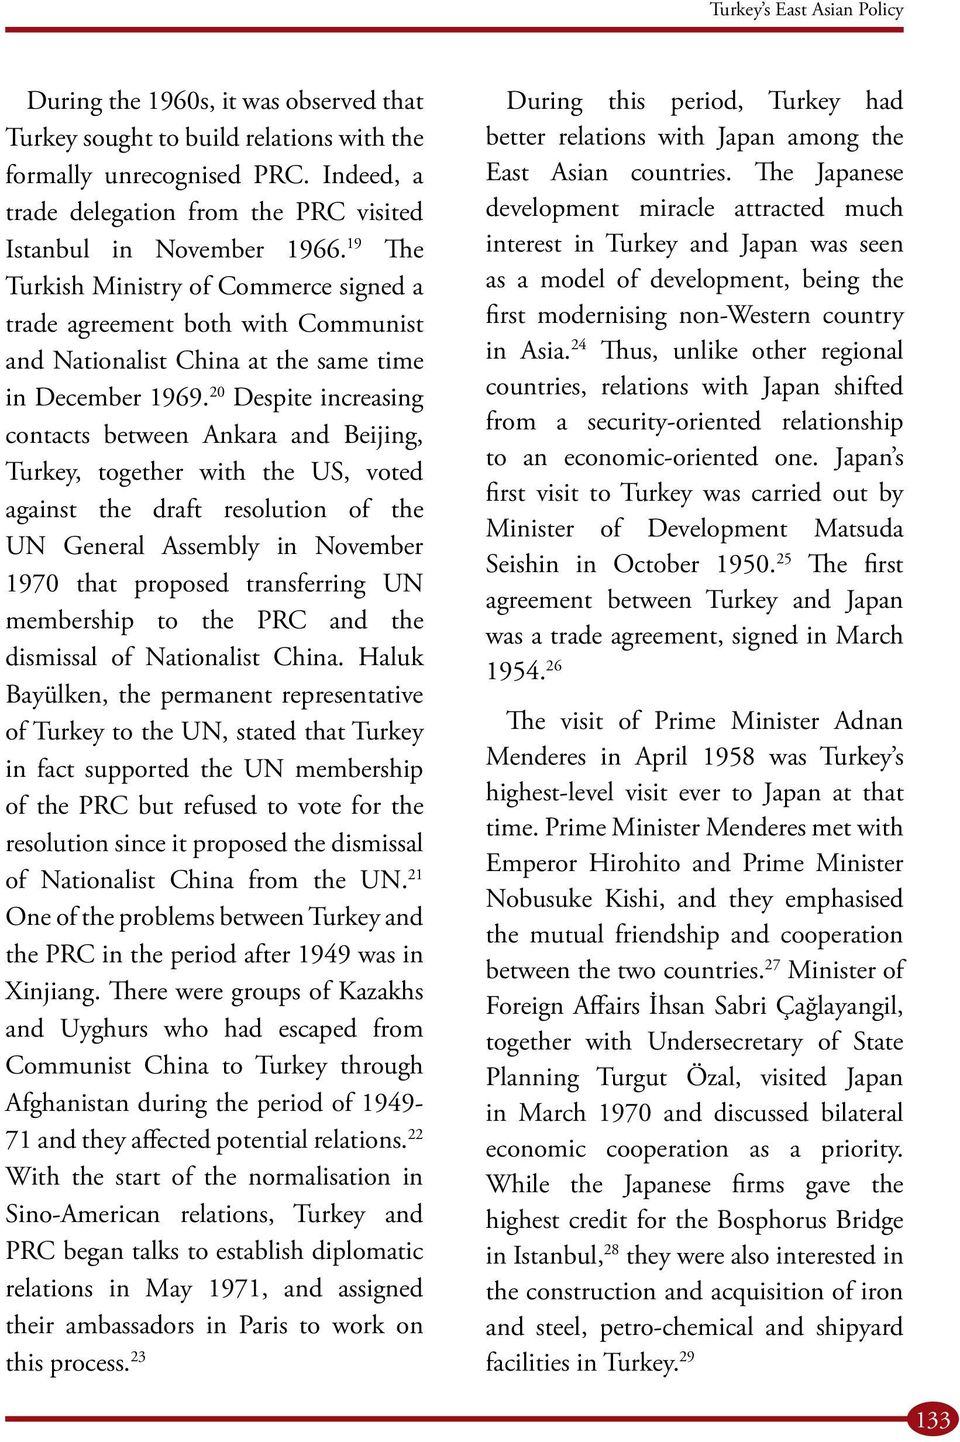 19 The Turkish Ministry of Commerce signed a trade agreement both with Communist and Nationalist China at the same time in December 1969.